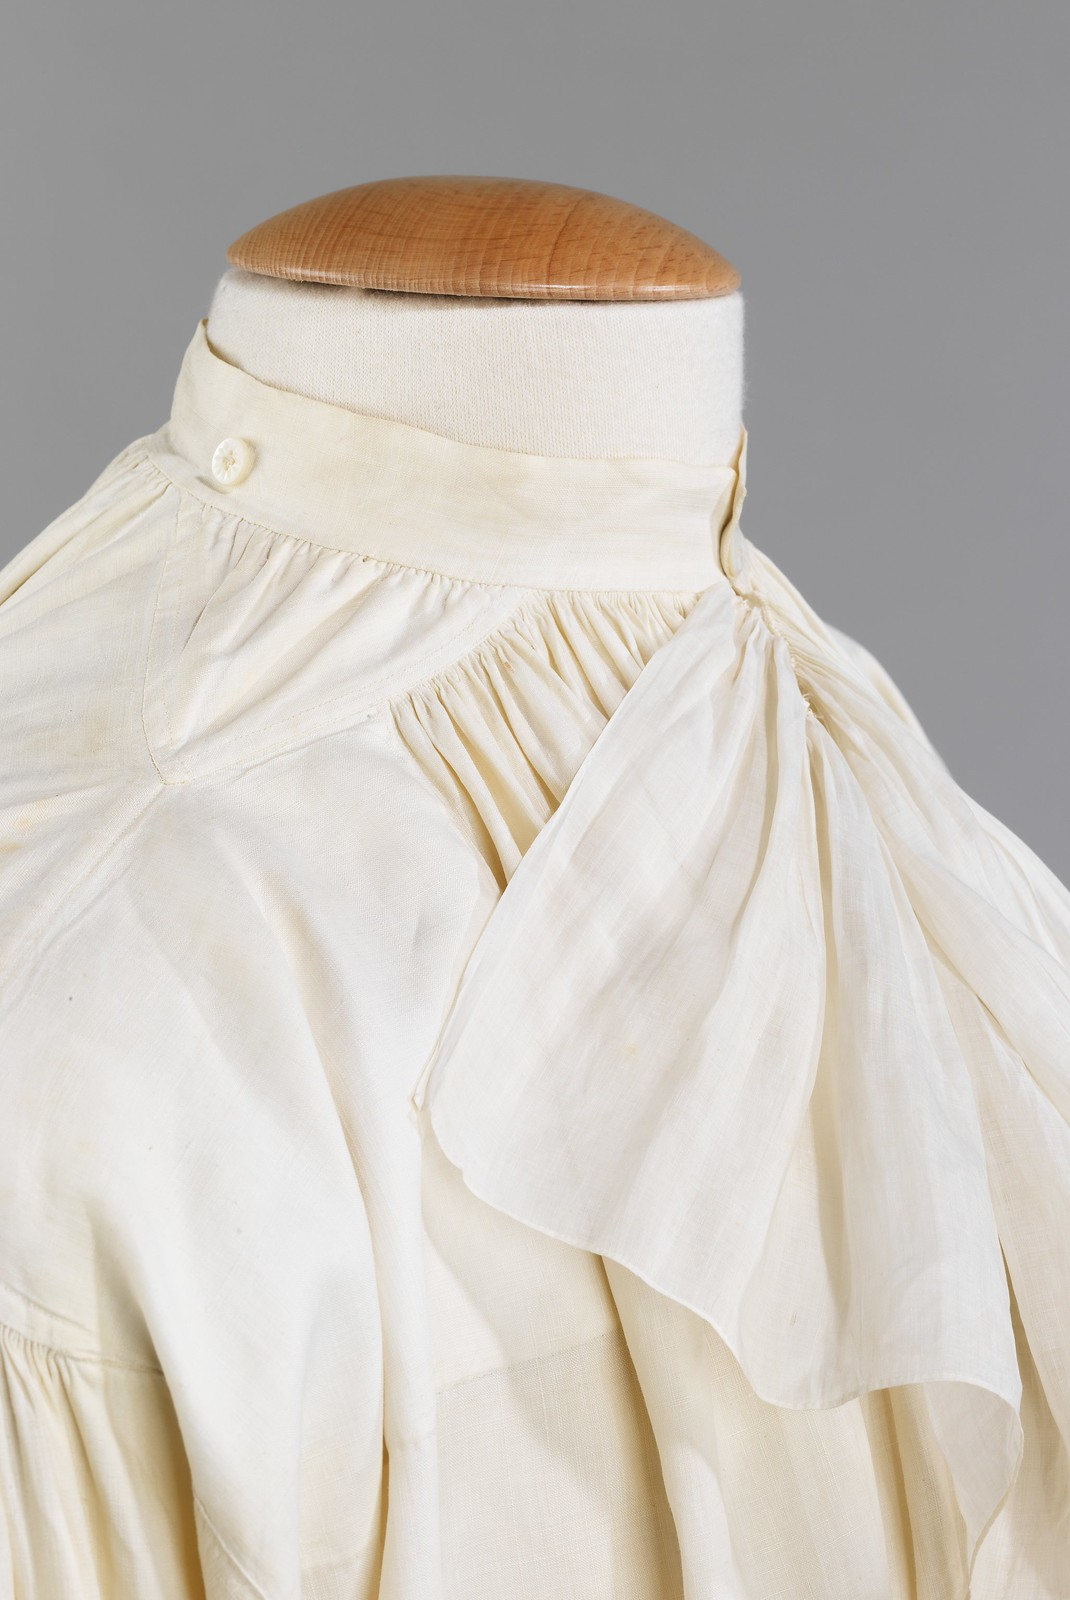 1780. Shirt. French. Linen. metmuseum